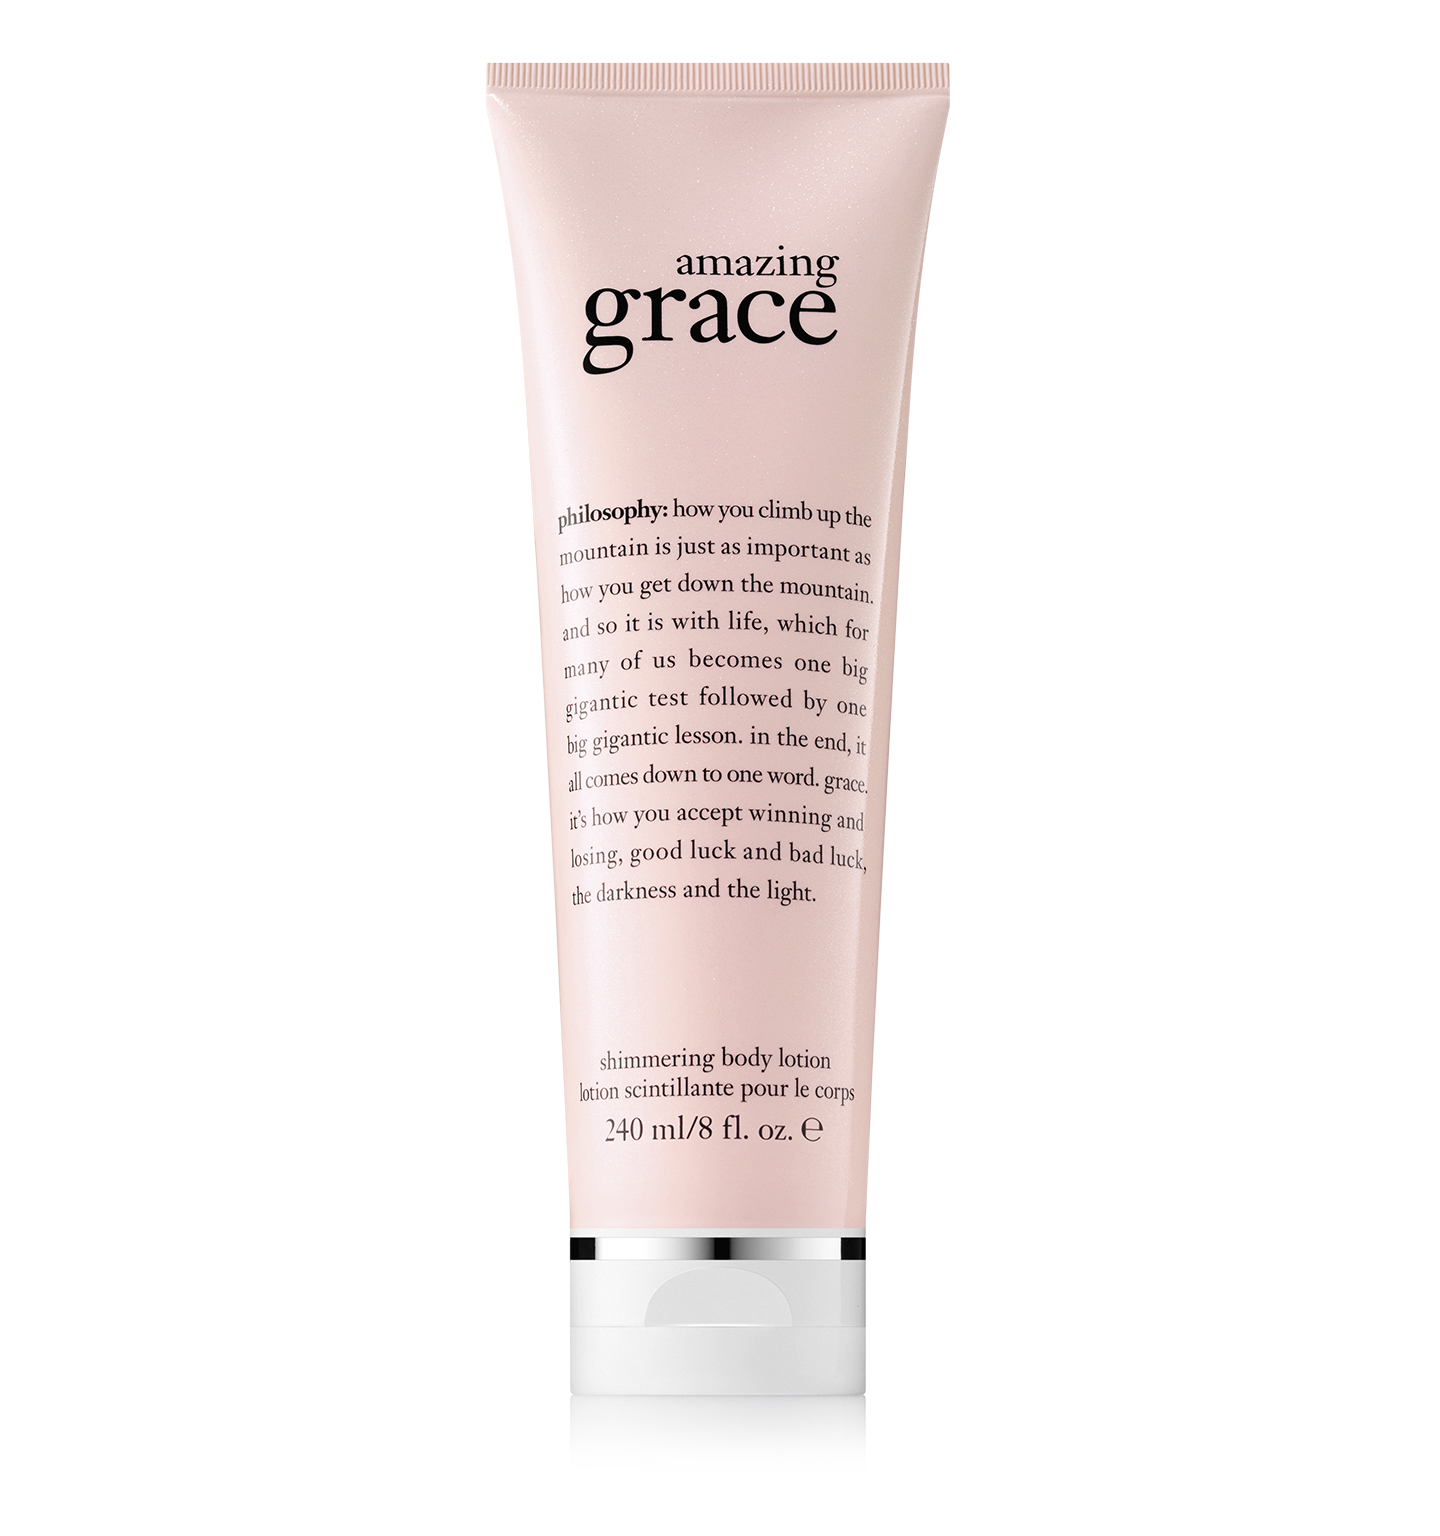 philosophy, amazing grace shimmering body lotion